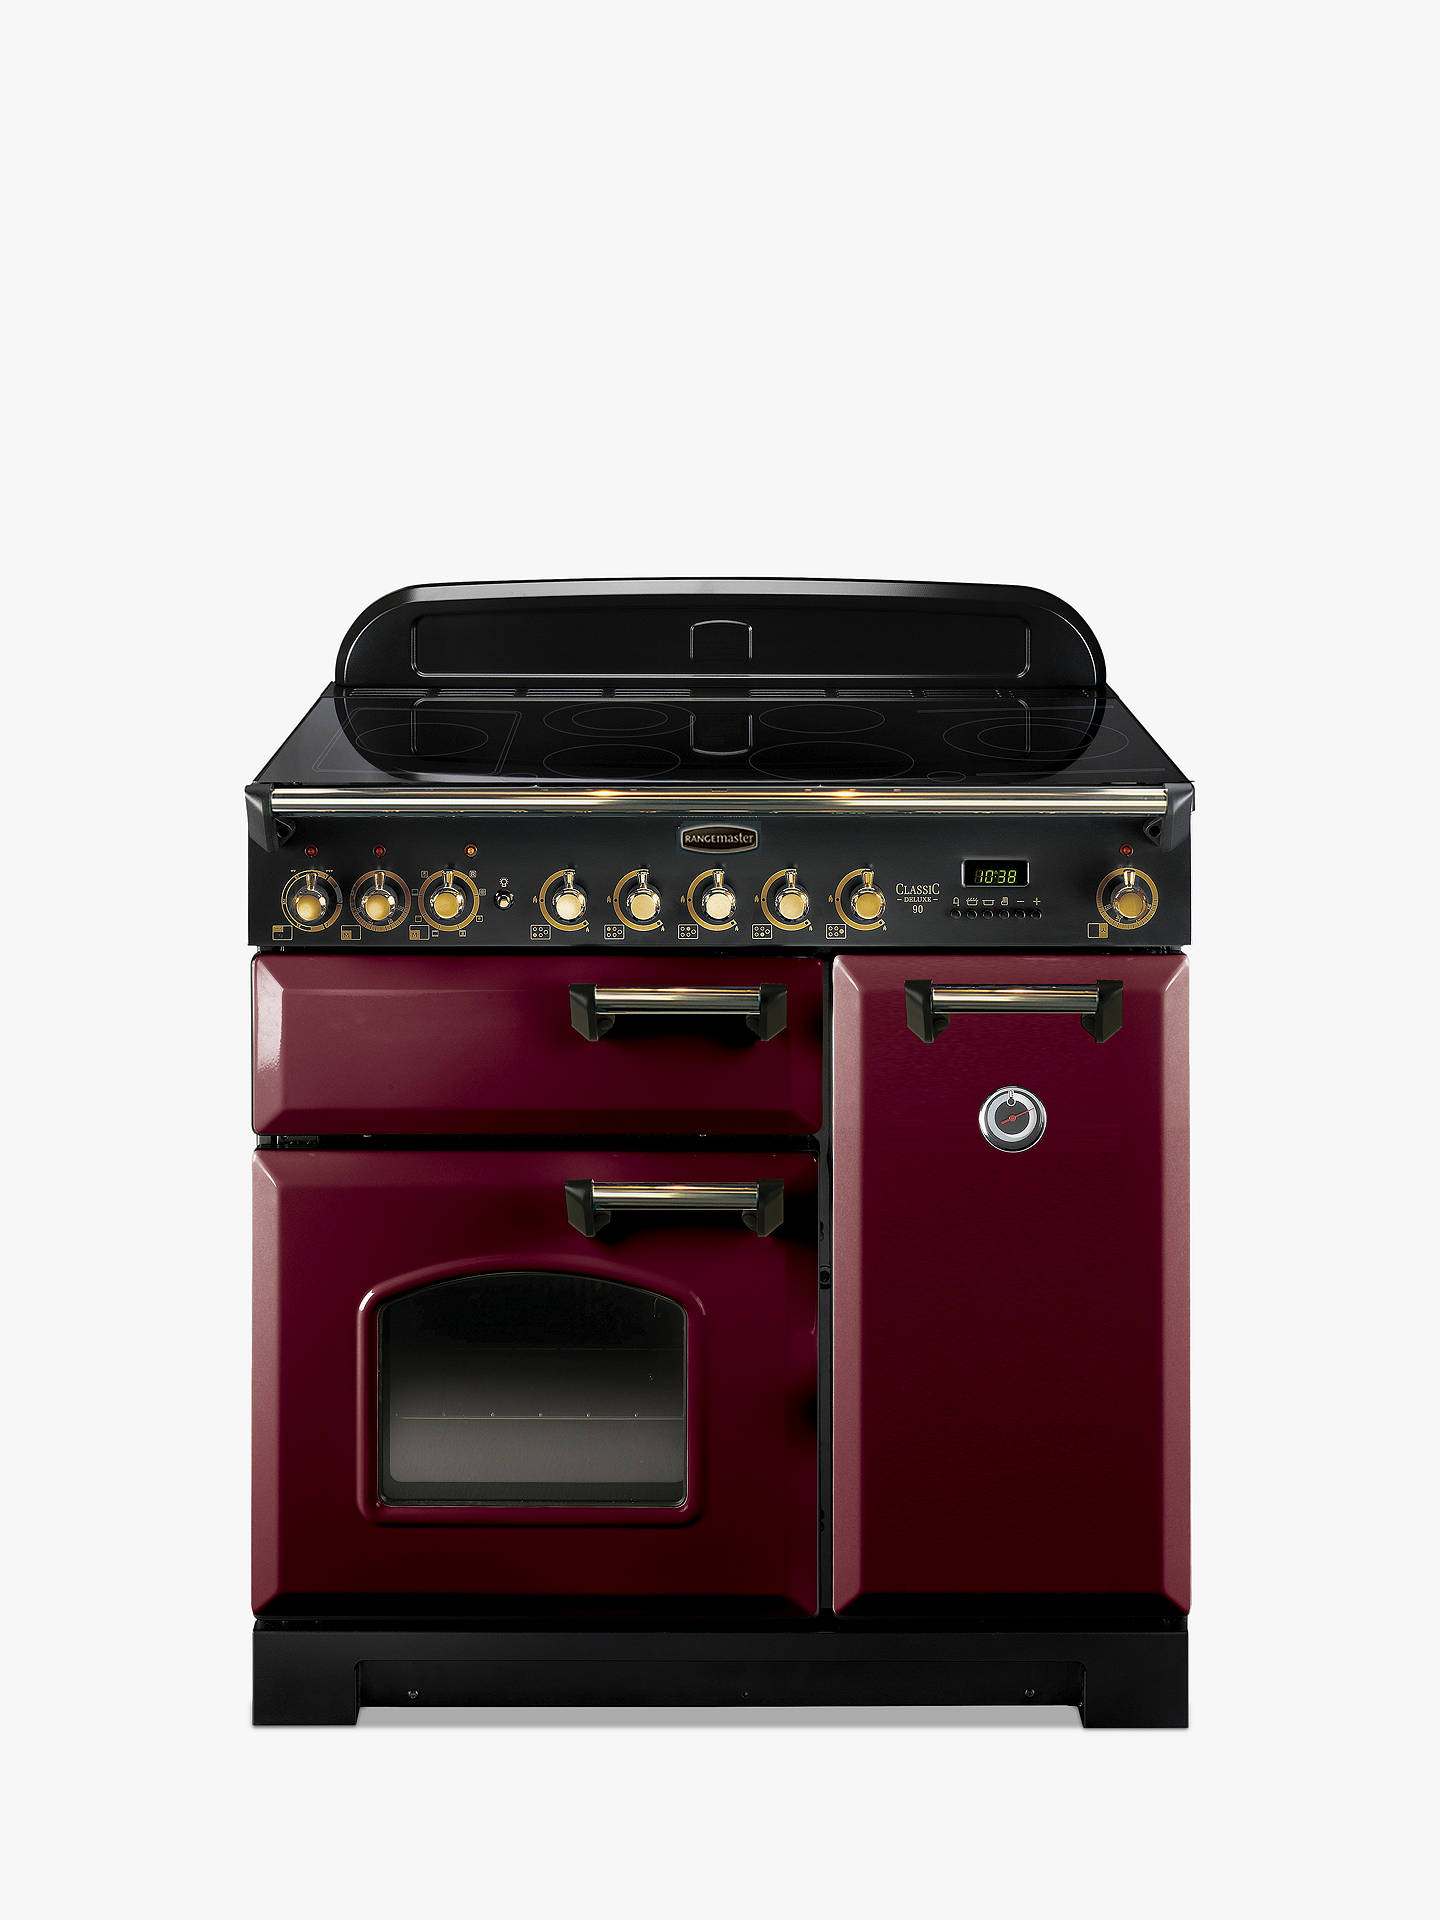 BuyRangemaster Classic Deluxe 90 Electric Range Cooker, Cranberry/Brass Trim Online at johnlewis.com